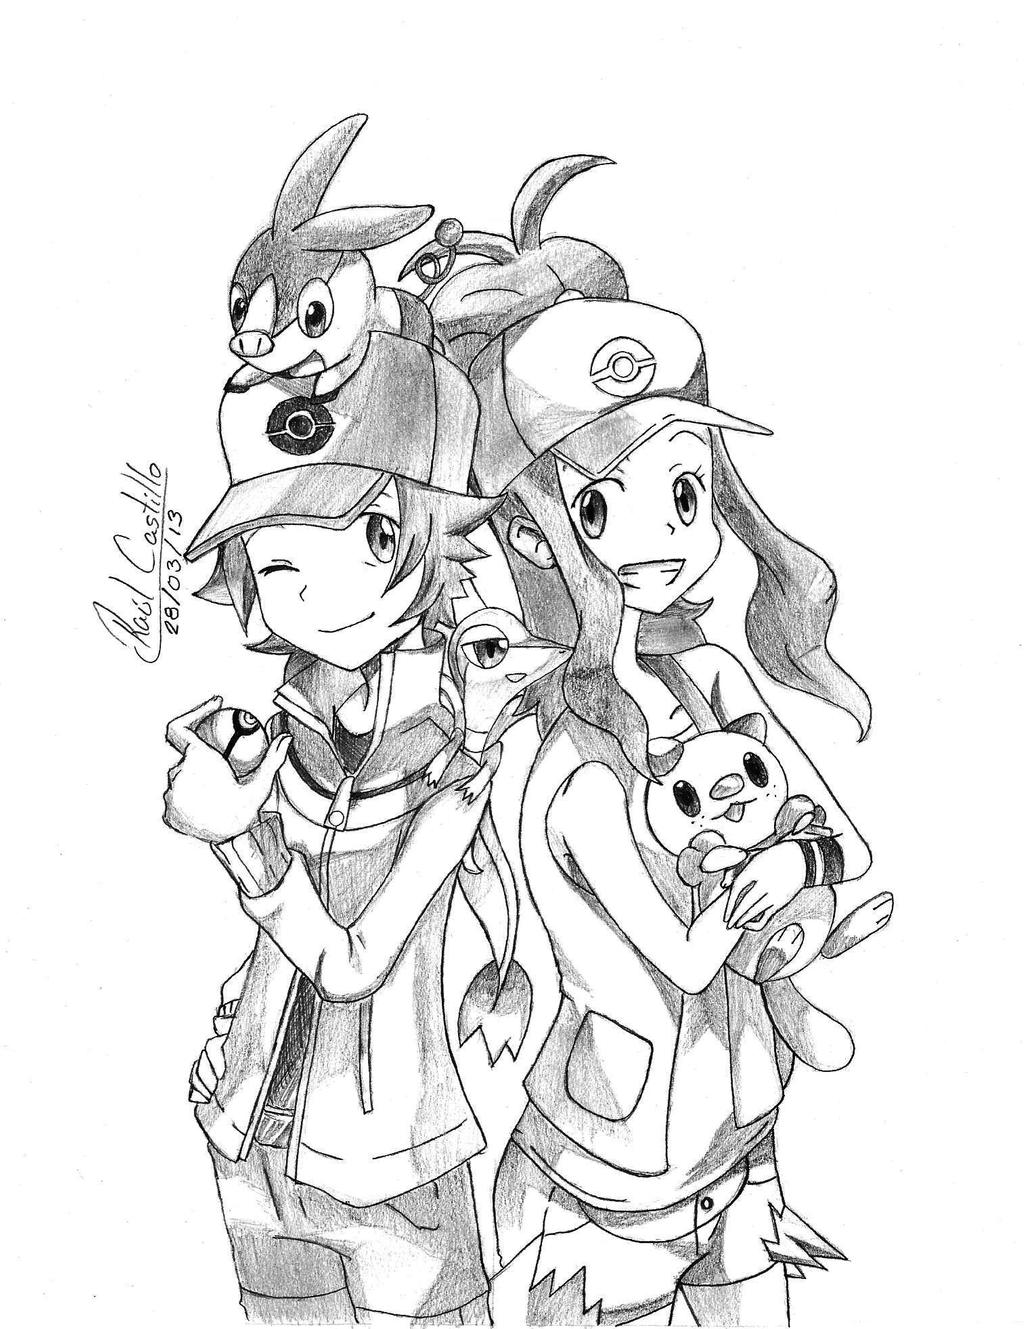 pokemon black and white pokemon drawing squirtle bulbasaur charmander and white pokemon black